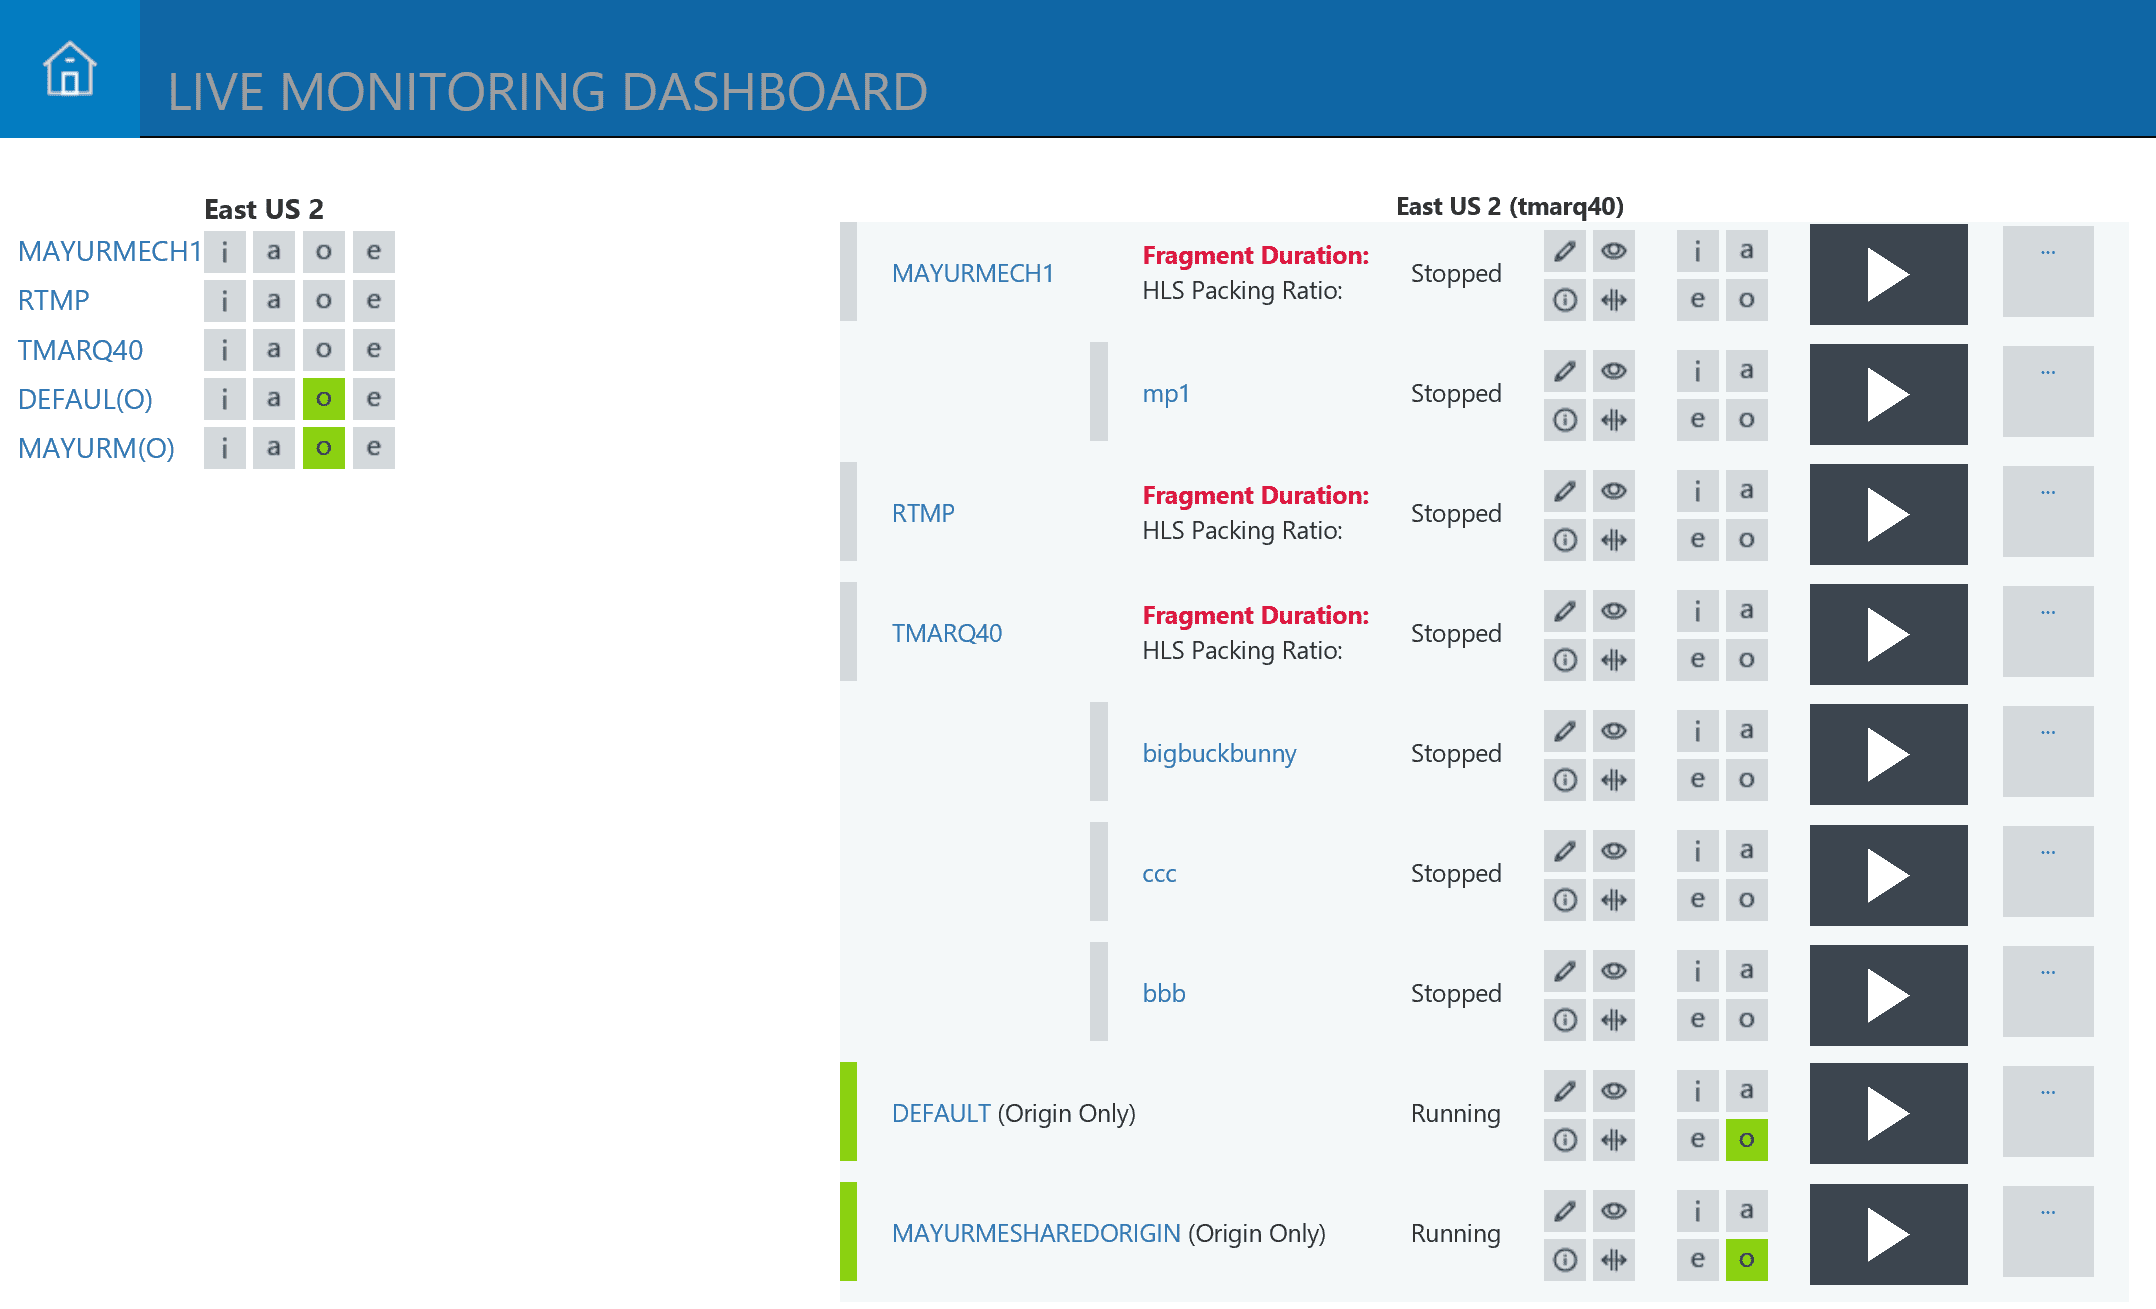 Azure Media Services (AMS) Live Monitoring Dashboard Overview